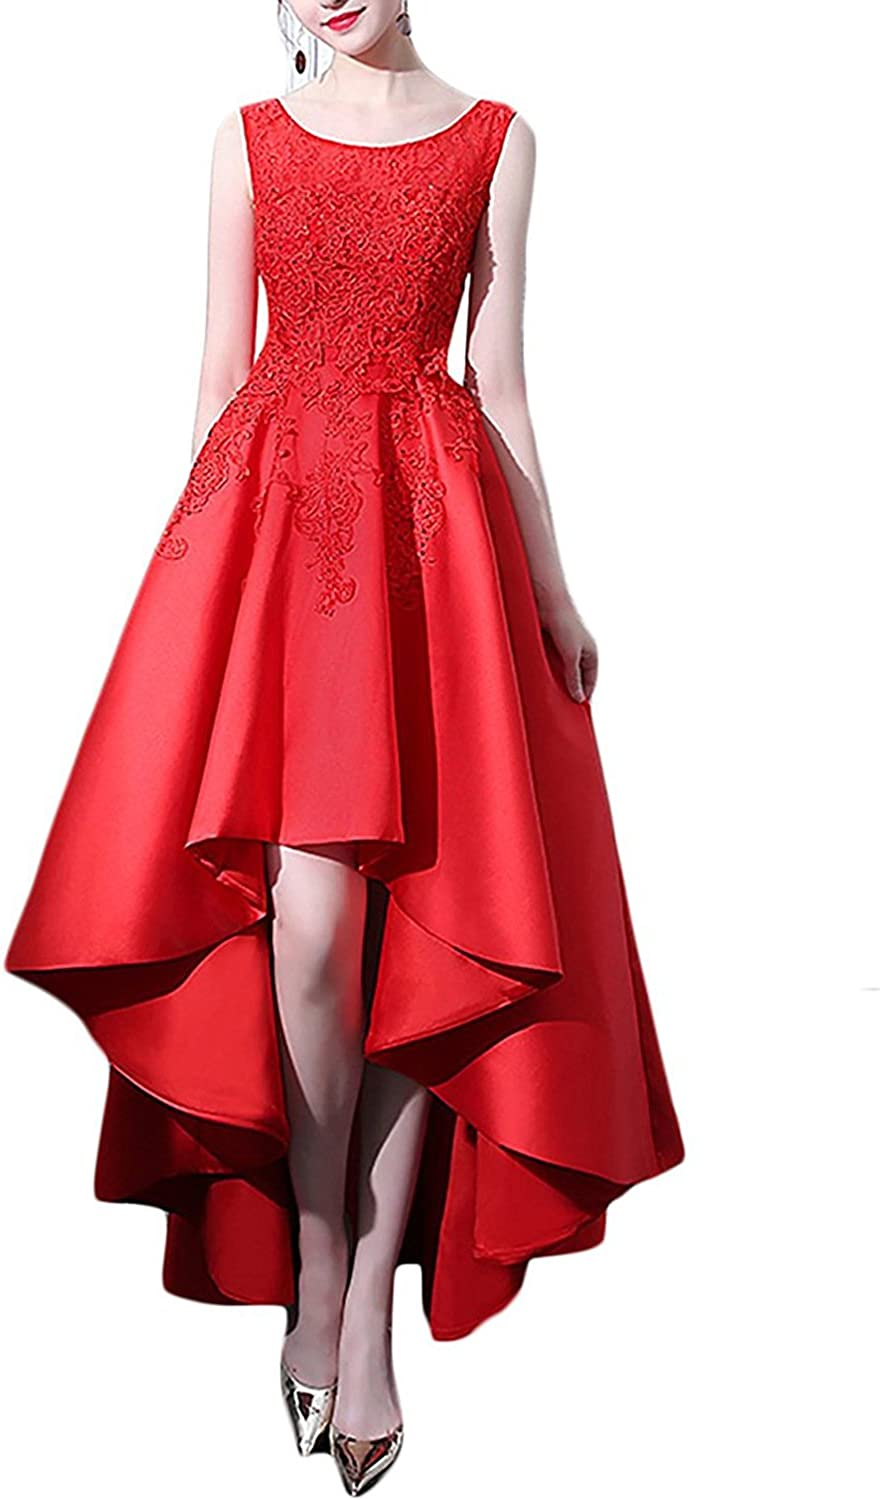 Aurora Bridal Womens High Low Homecoming Dresses 2018 Lace Appliques Satin Prom Gown AP147